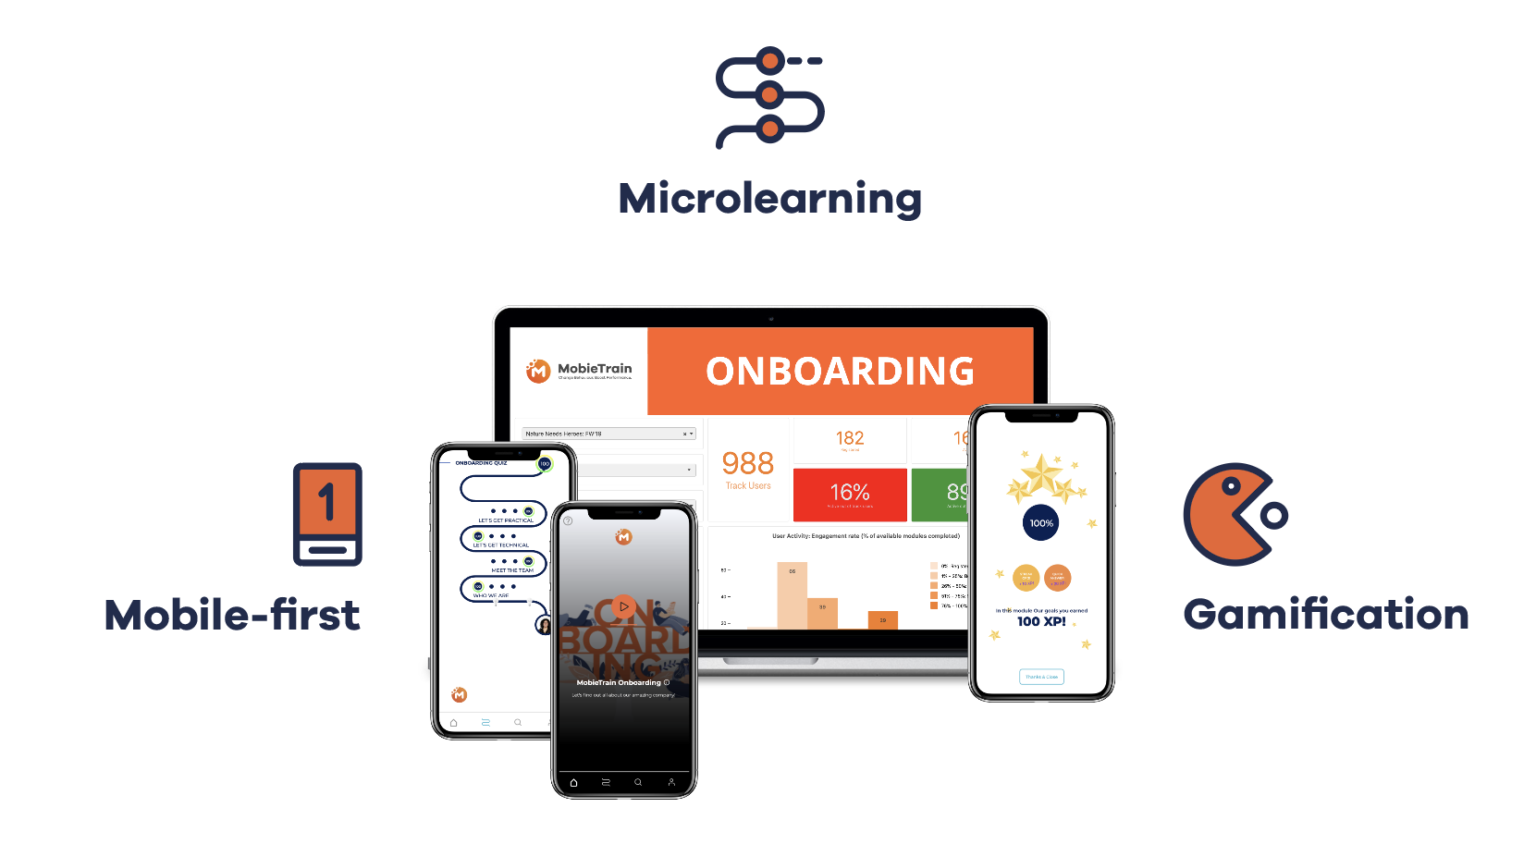 Mobile-first, Microlearning, gamification app